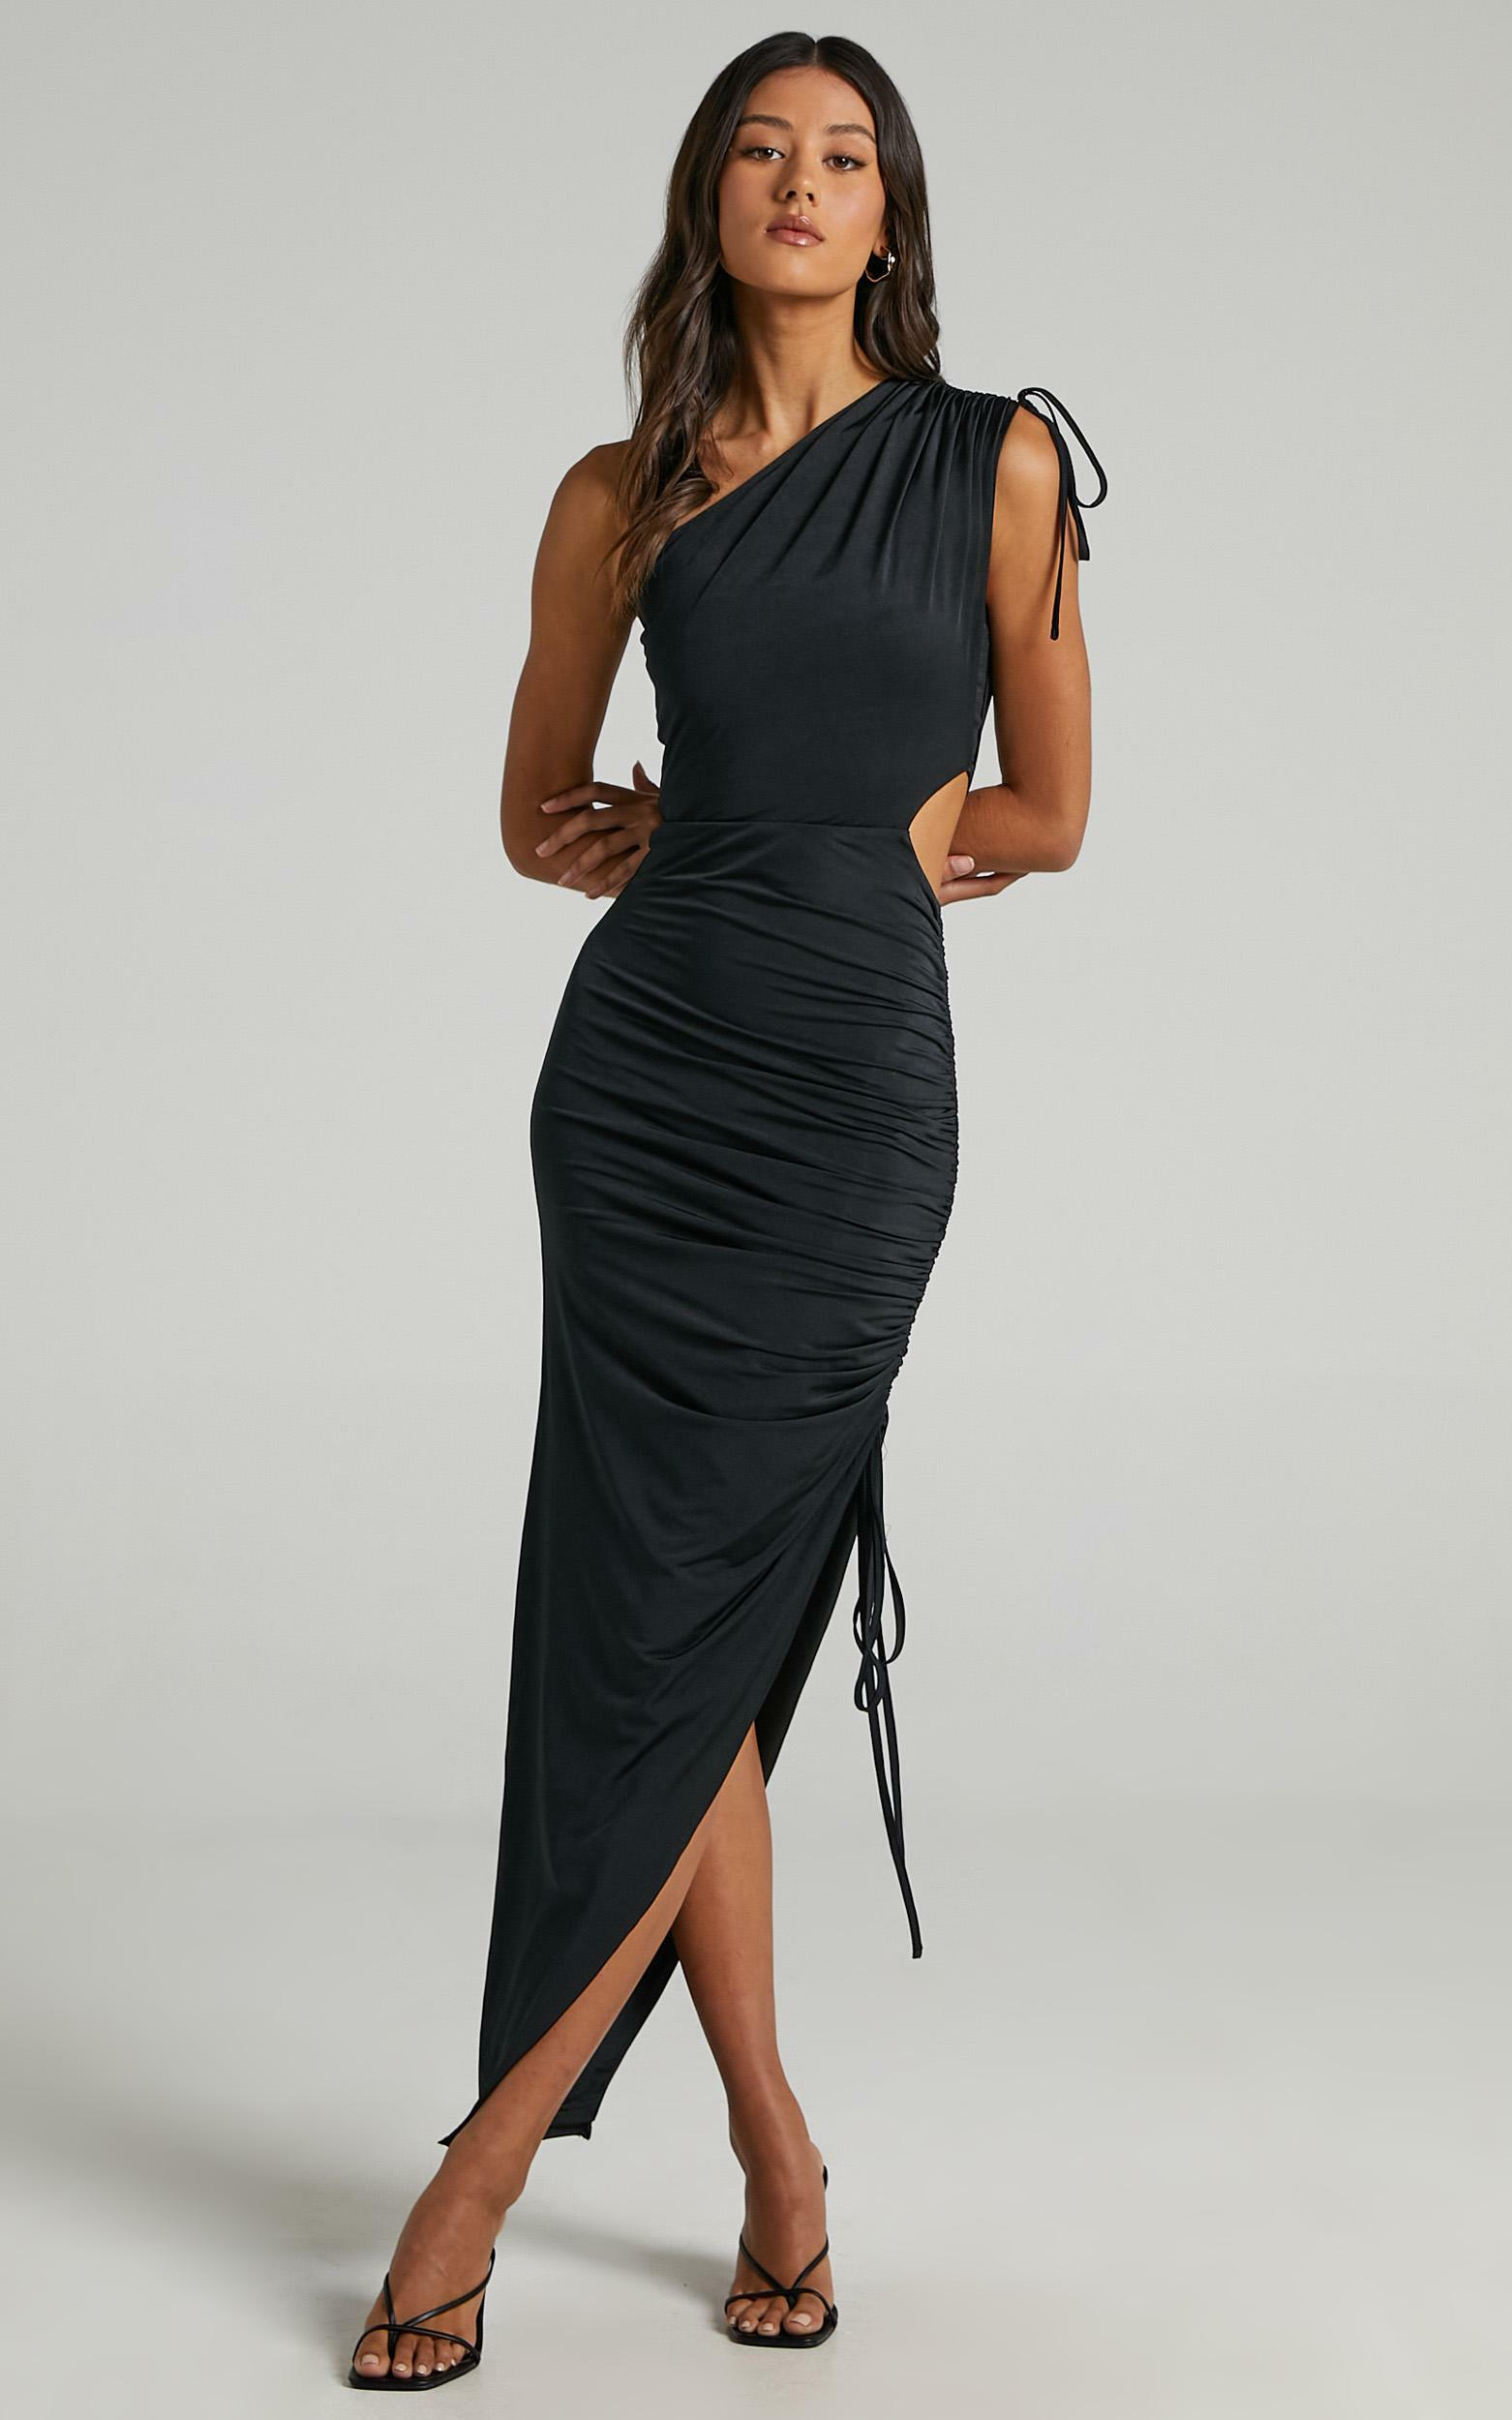 Dionyza Dress in Black - 6 (XS), Black, hi-res image number null